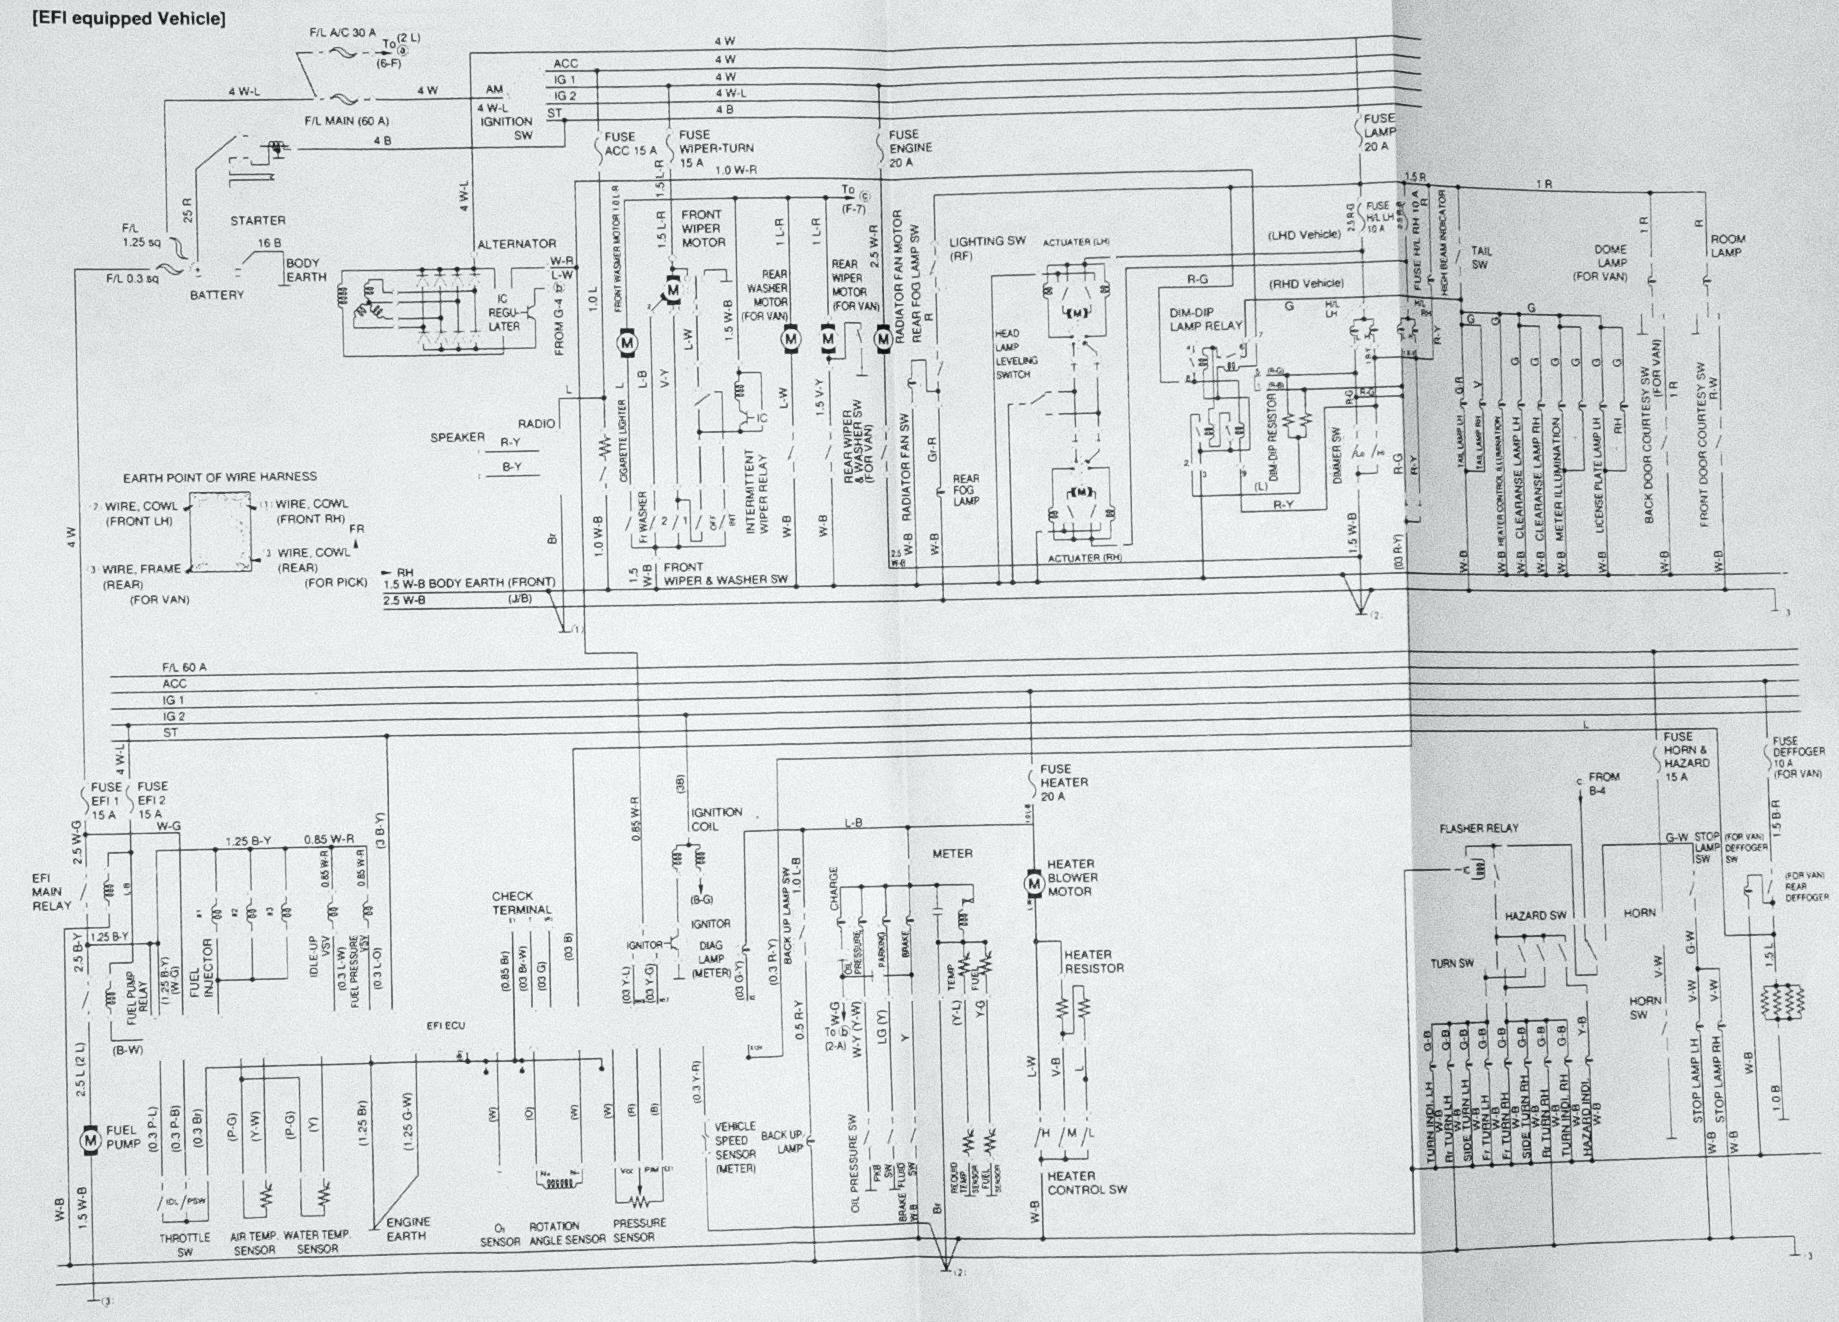 daihatsu sirion electrical diagram house wiring diagram symbols u2022 rh maxturner co wiring diagram daihatsu terios 2017 Daihatsu Terios